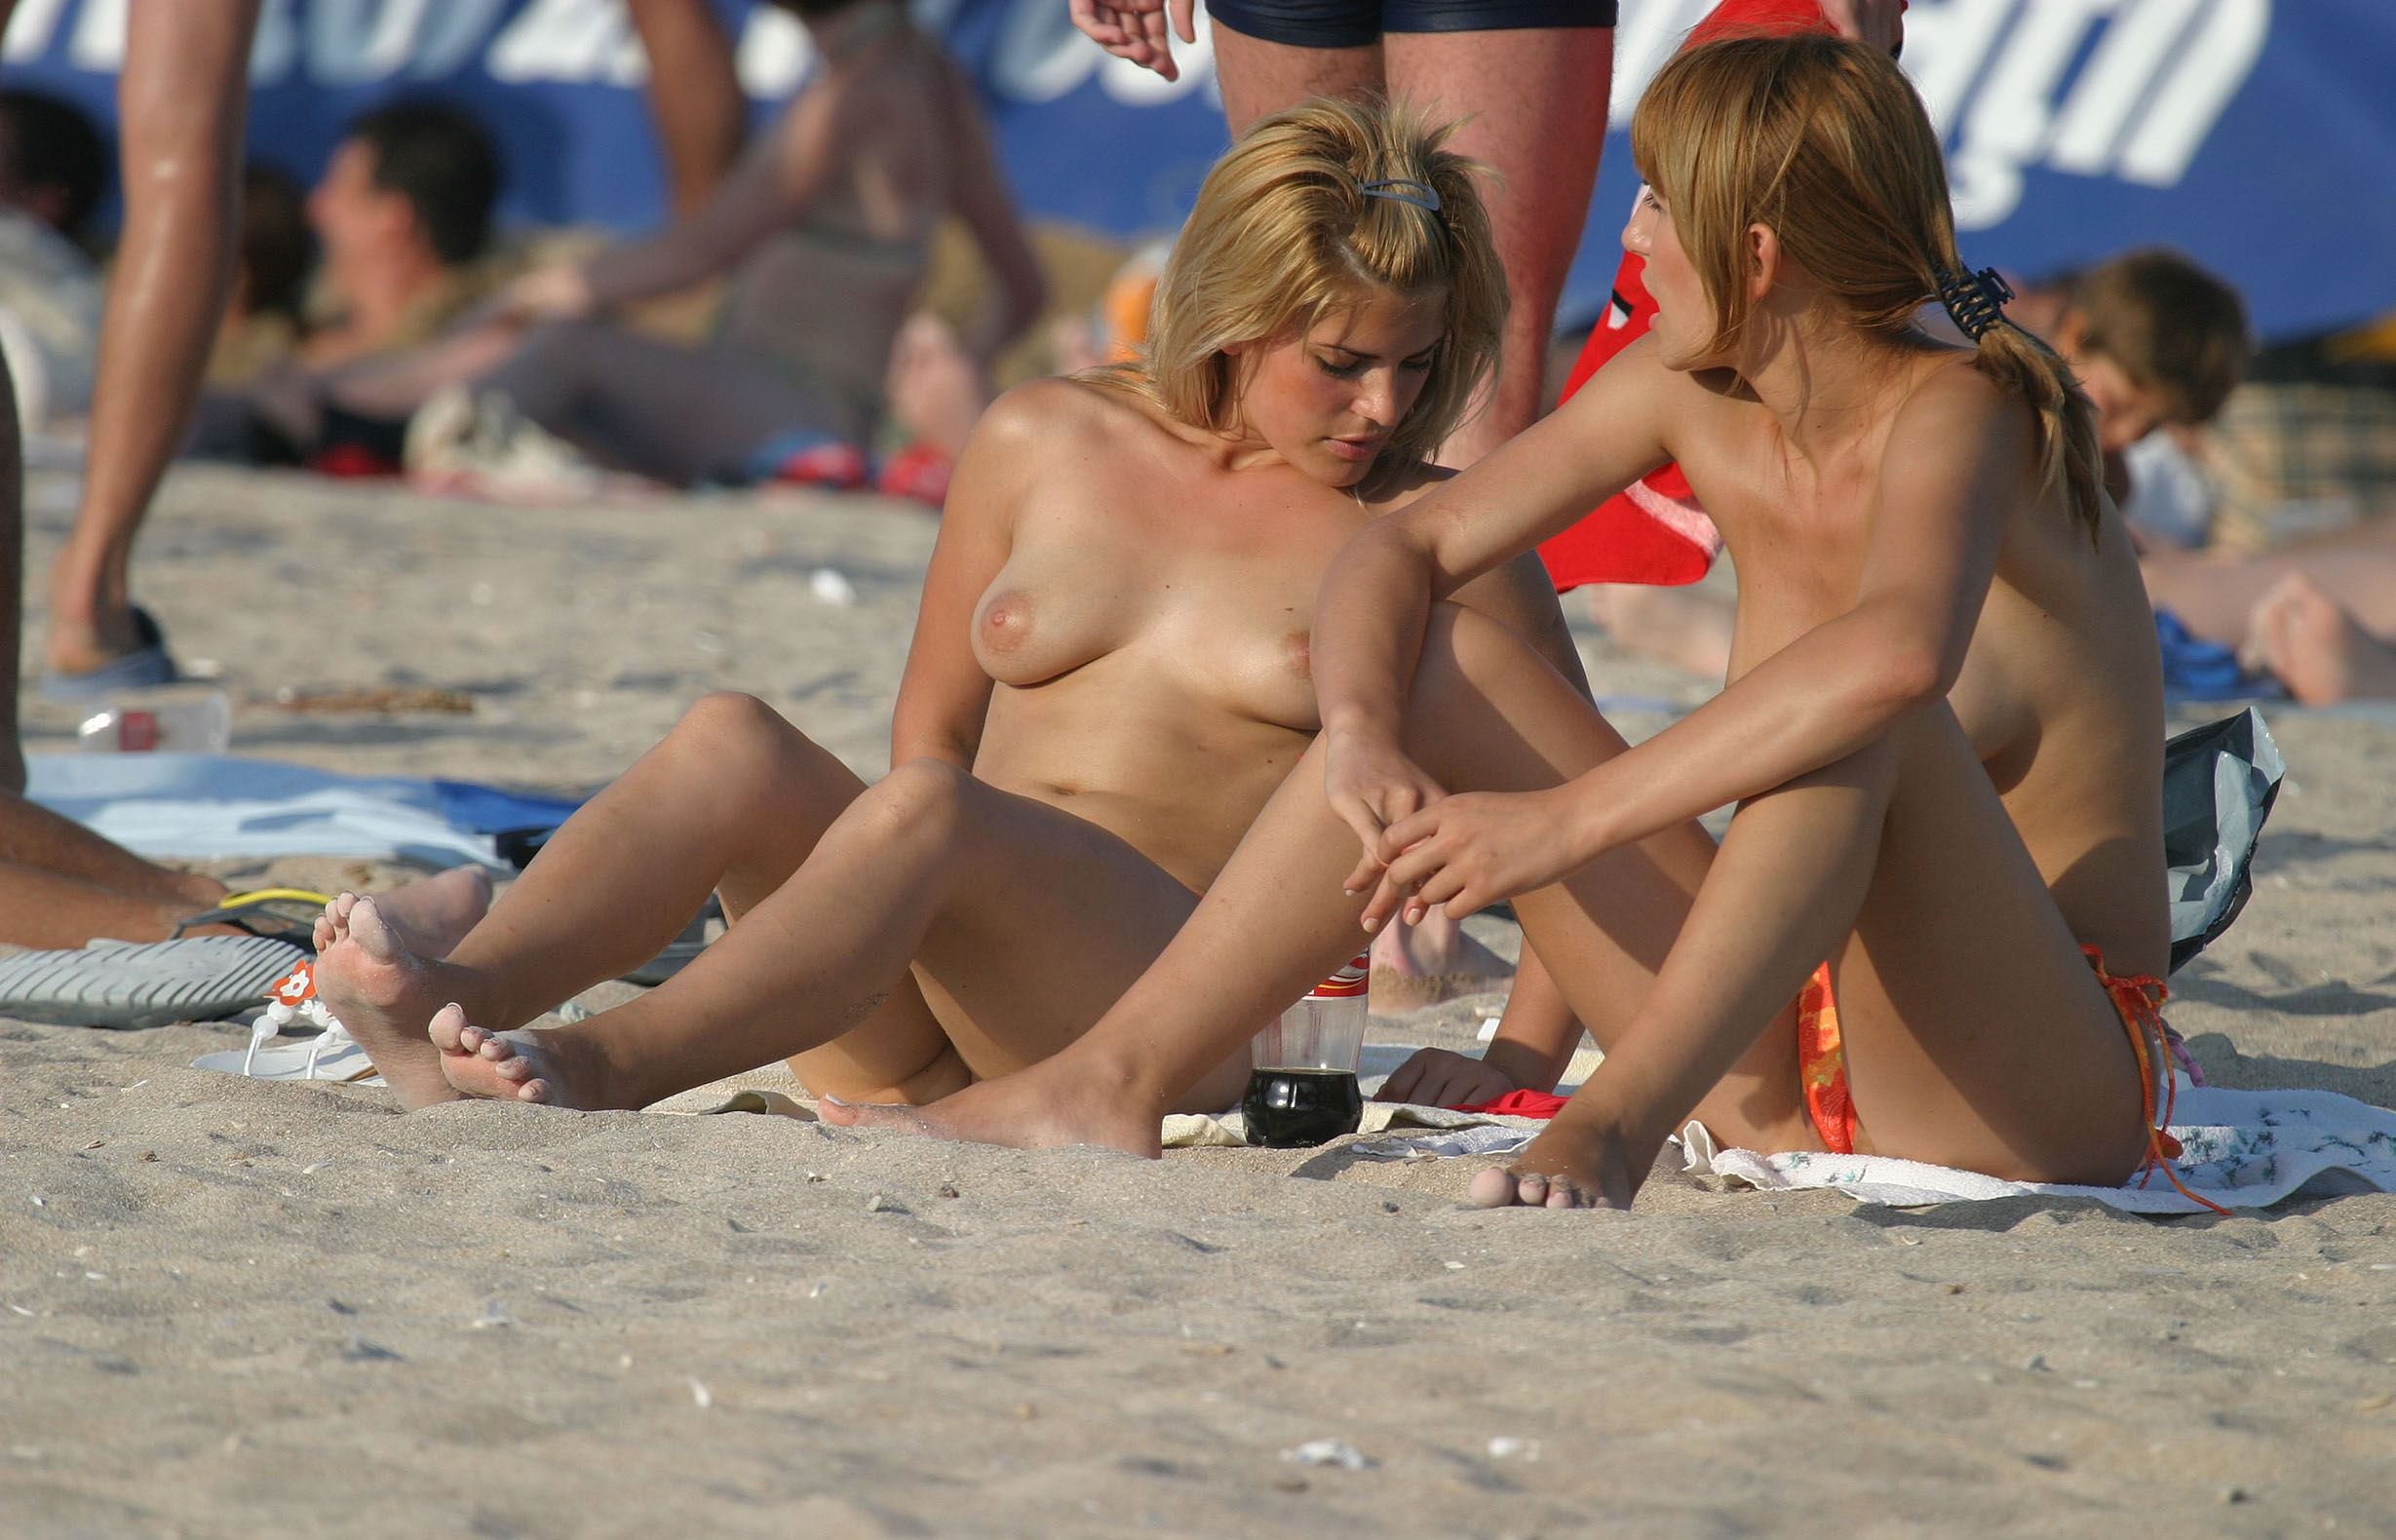 nude-beach-nudists-girls-mix-vol6-87